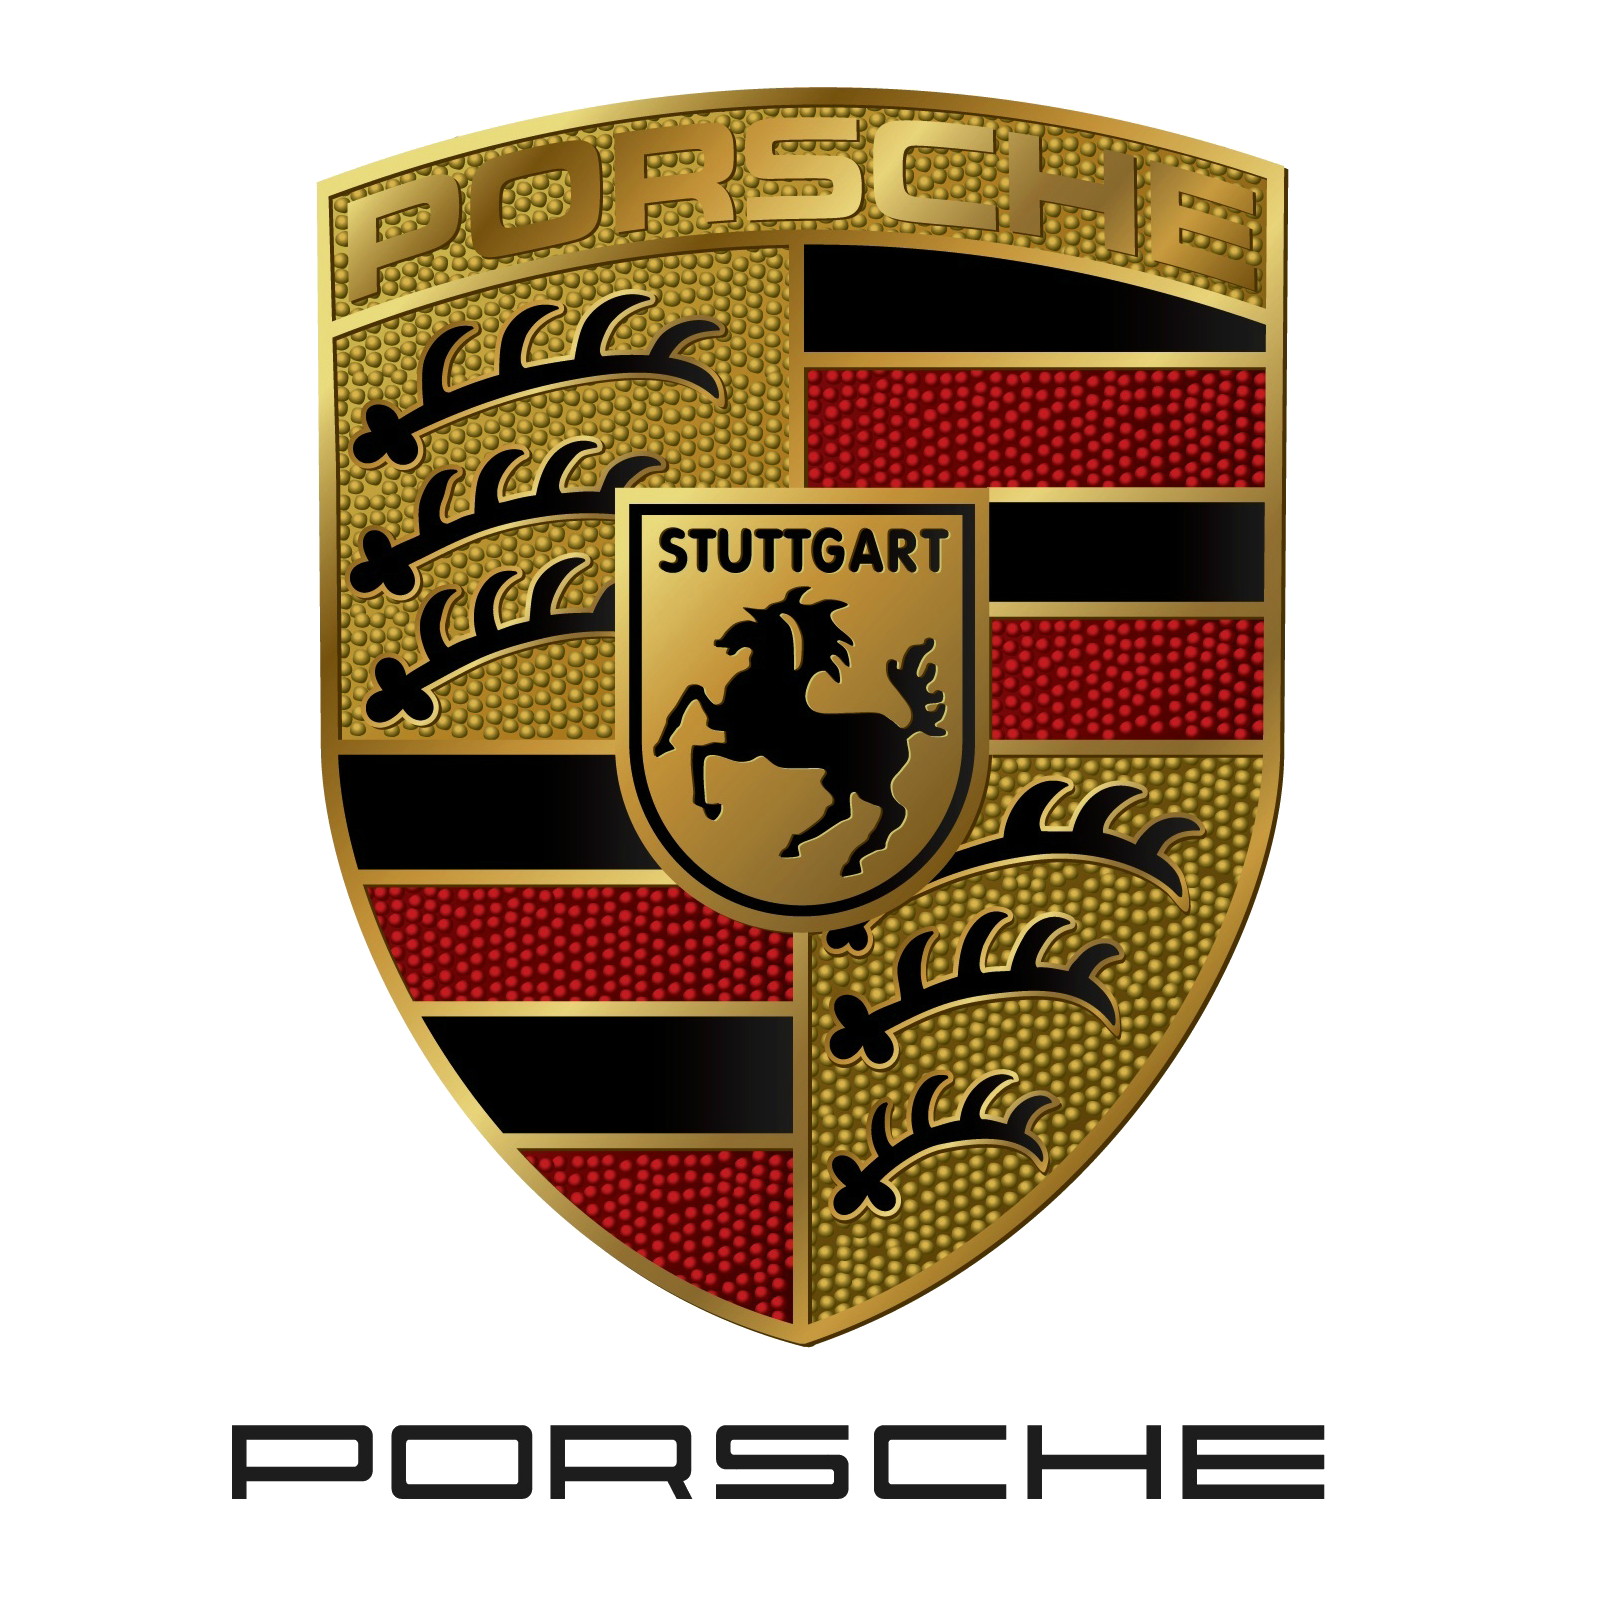 Porsche Logo Porsche Car Symbol Meaning And History Car Brand